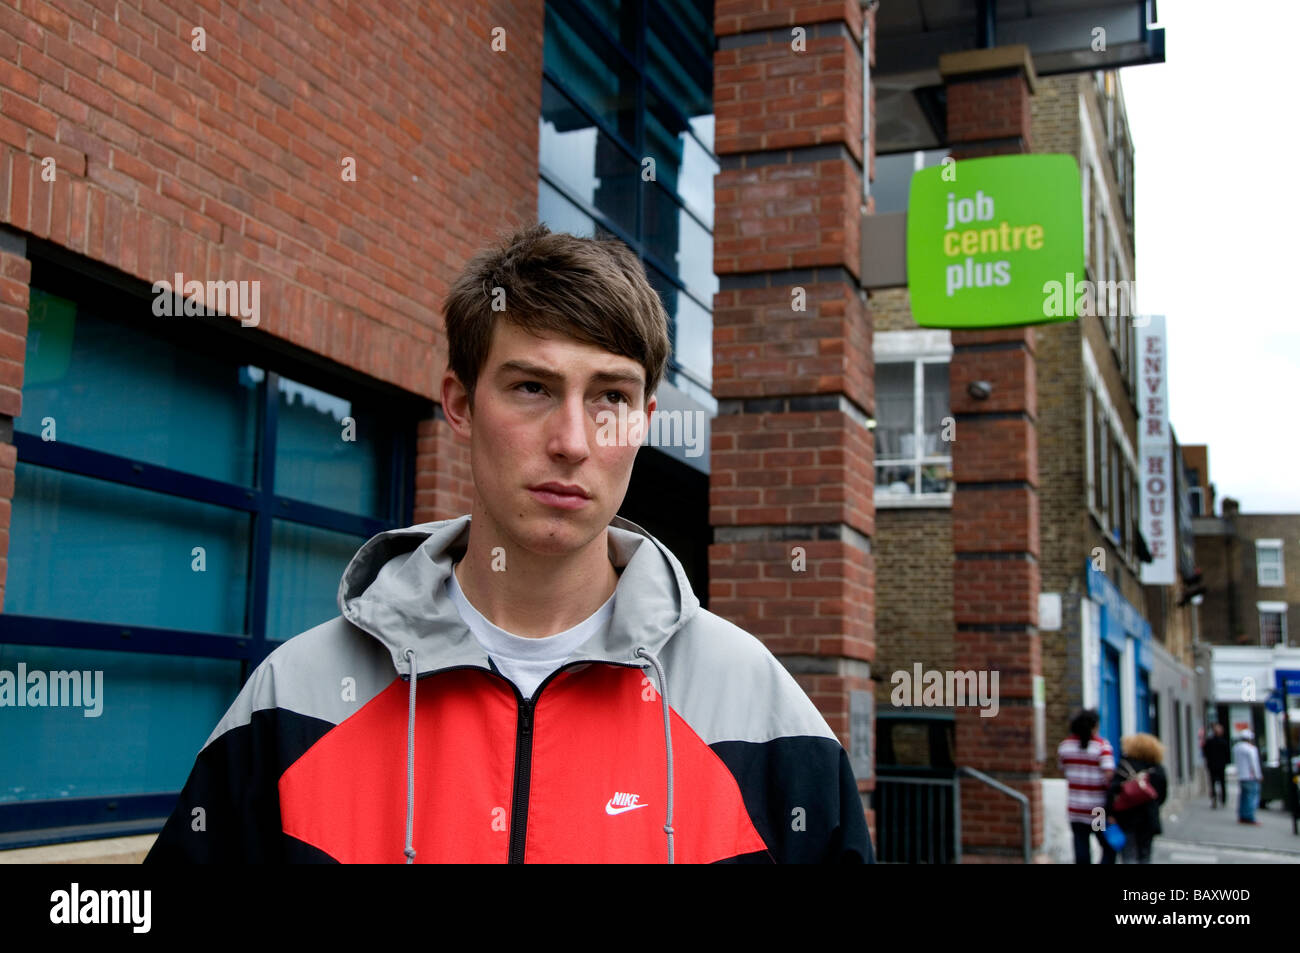 Young 20 year old man looking for work outside job centre plus - Stock Image